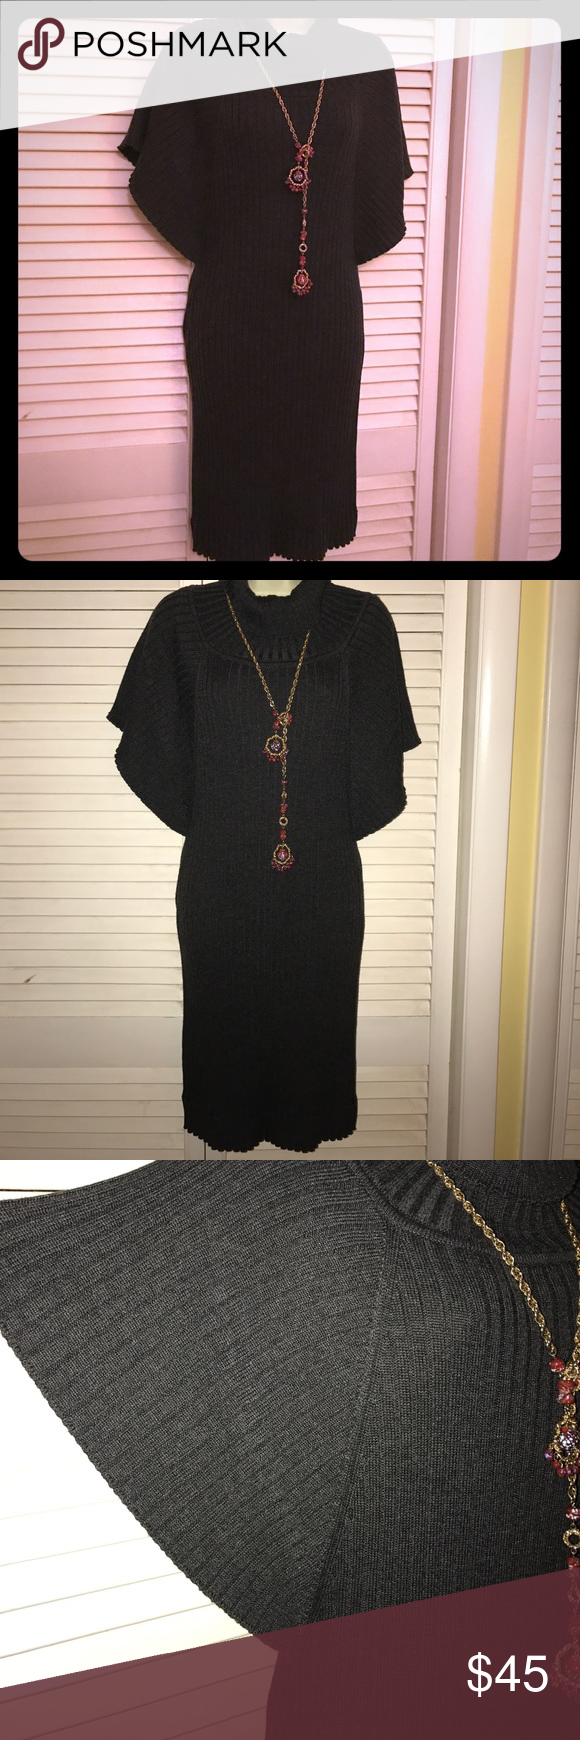 Calvin Klein Sweater Dress Gorgeous!  Ribbed Calvin Klein dress with flared cap sleeves. Perfect condition. It's a VERY dark gray/black. Calvin Klein Dresses Midi